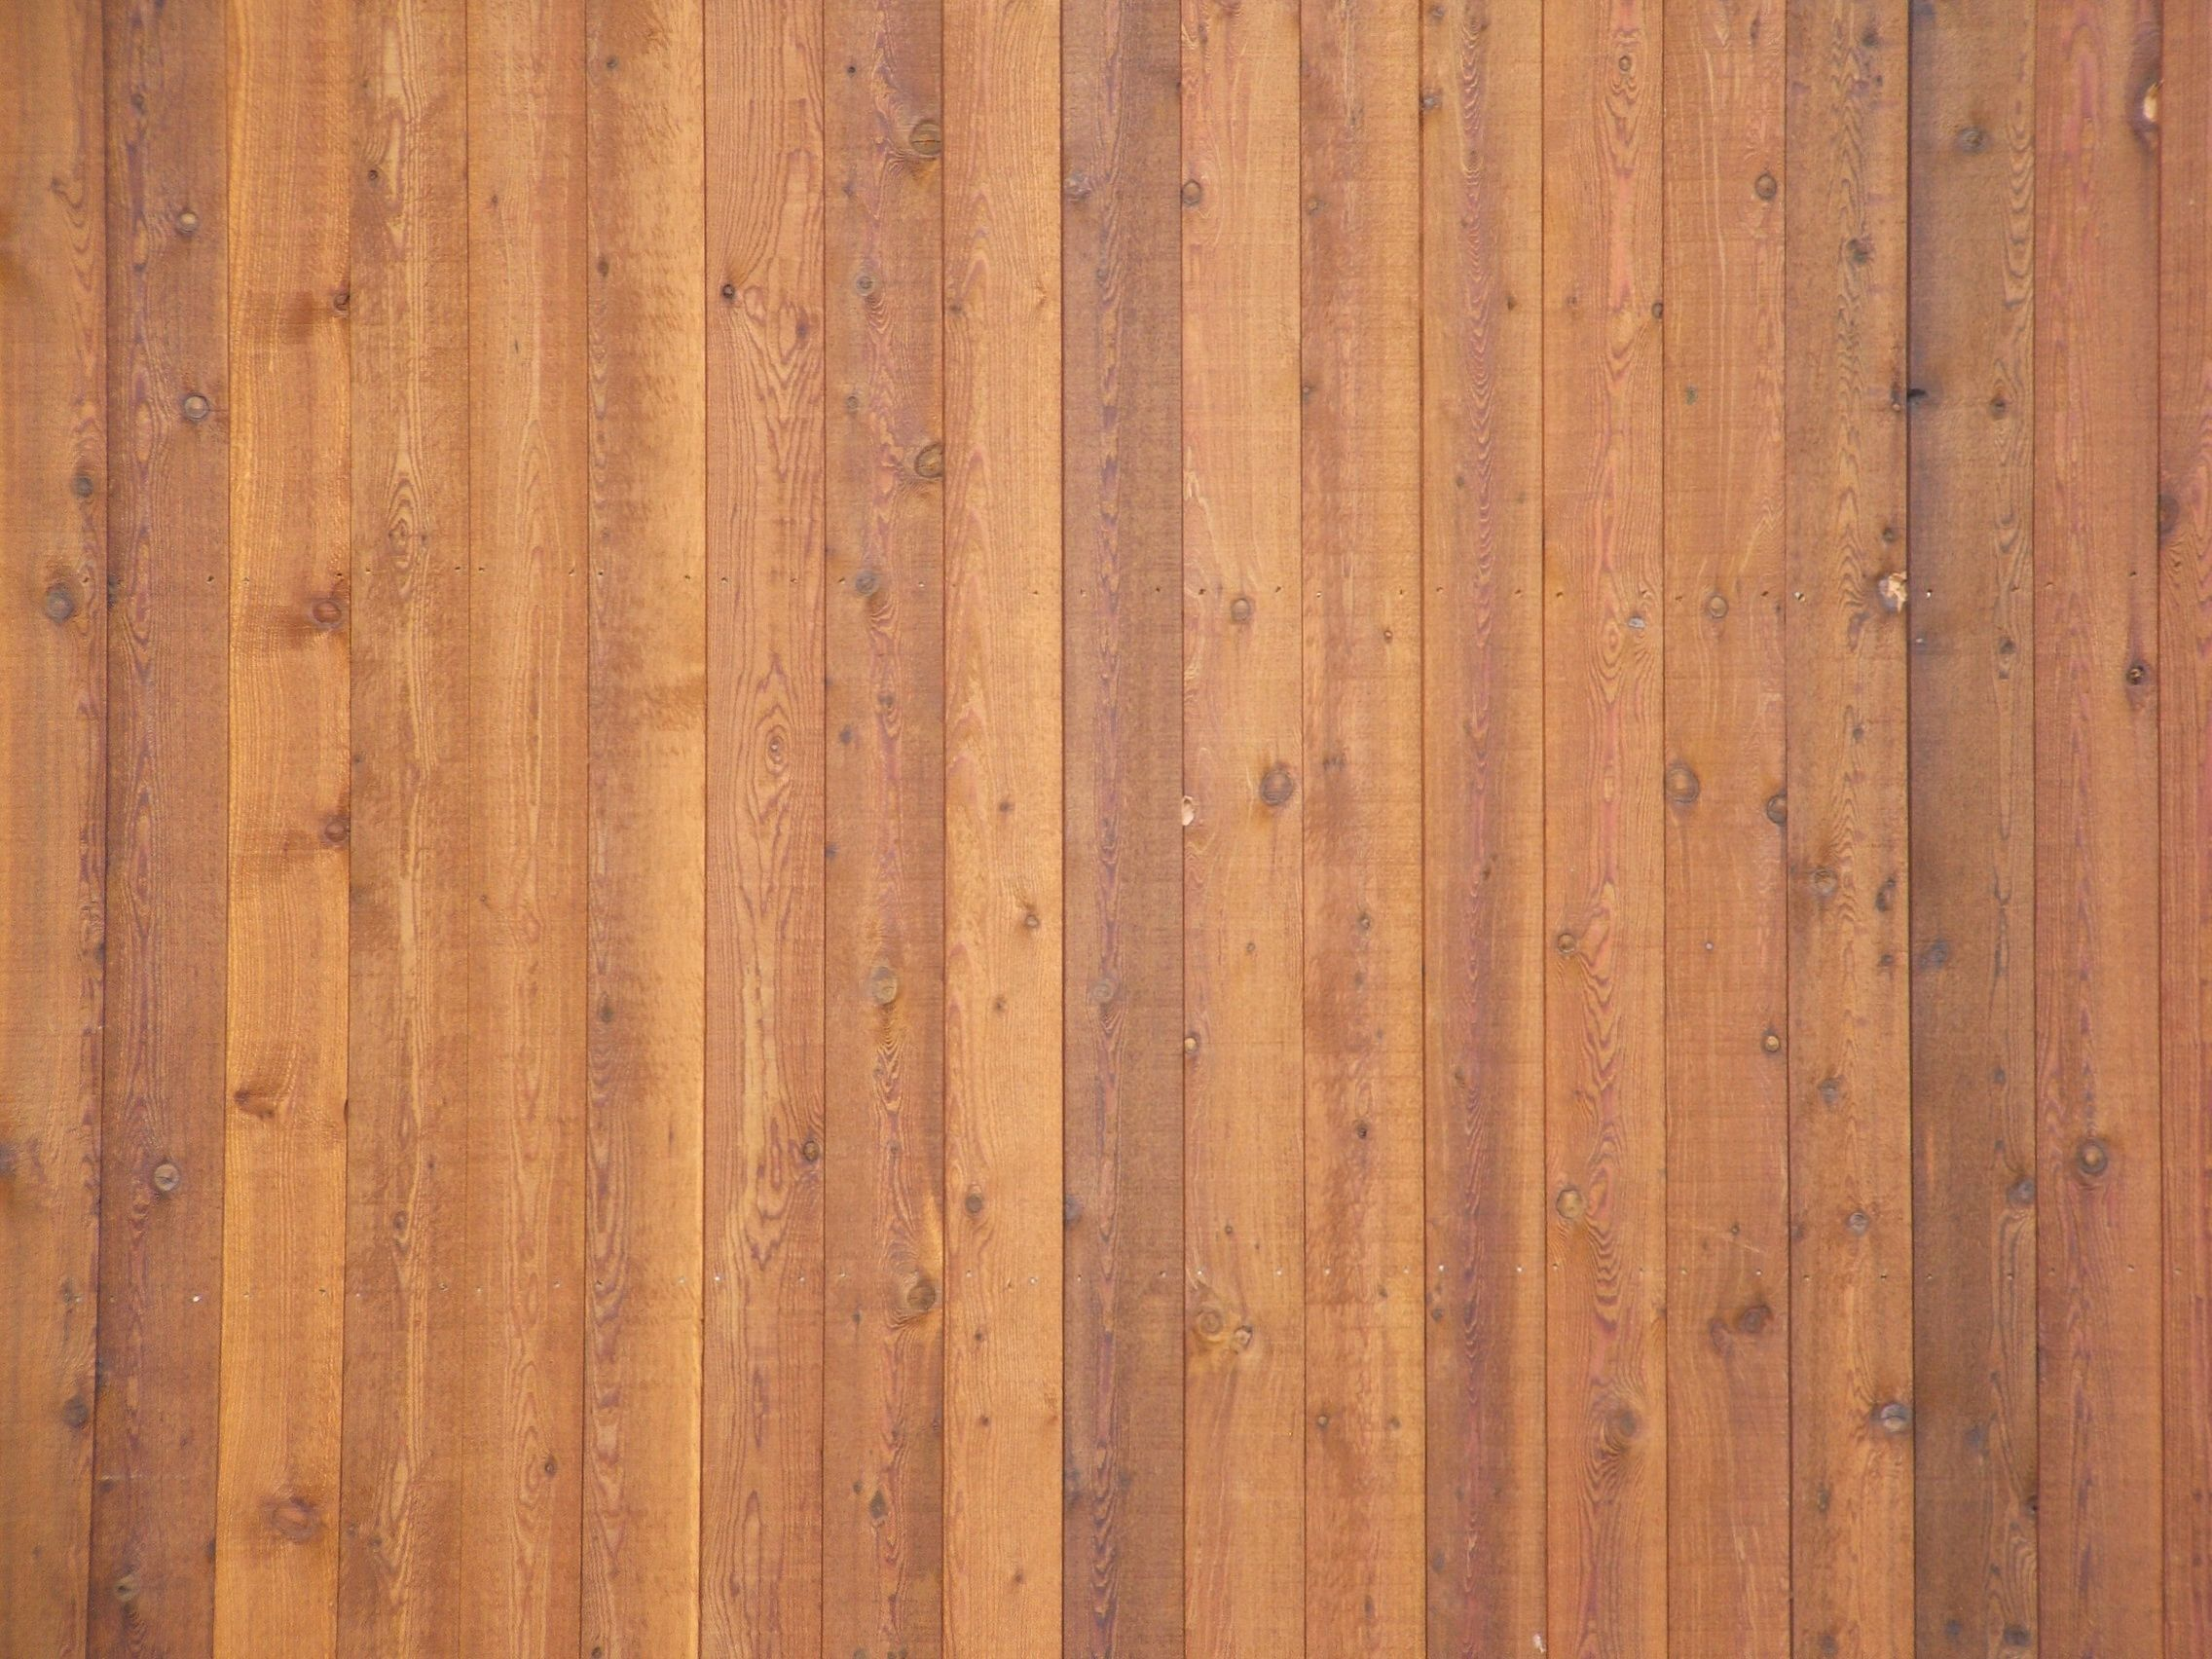 Wood Interior Wall Textures | Home | Pinterest | Wall textures, Wood ...